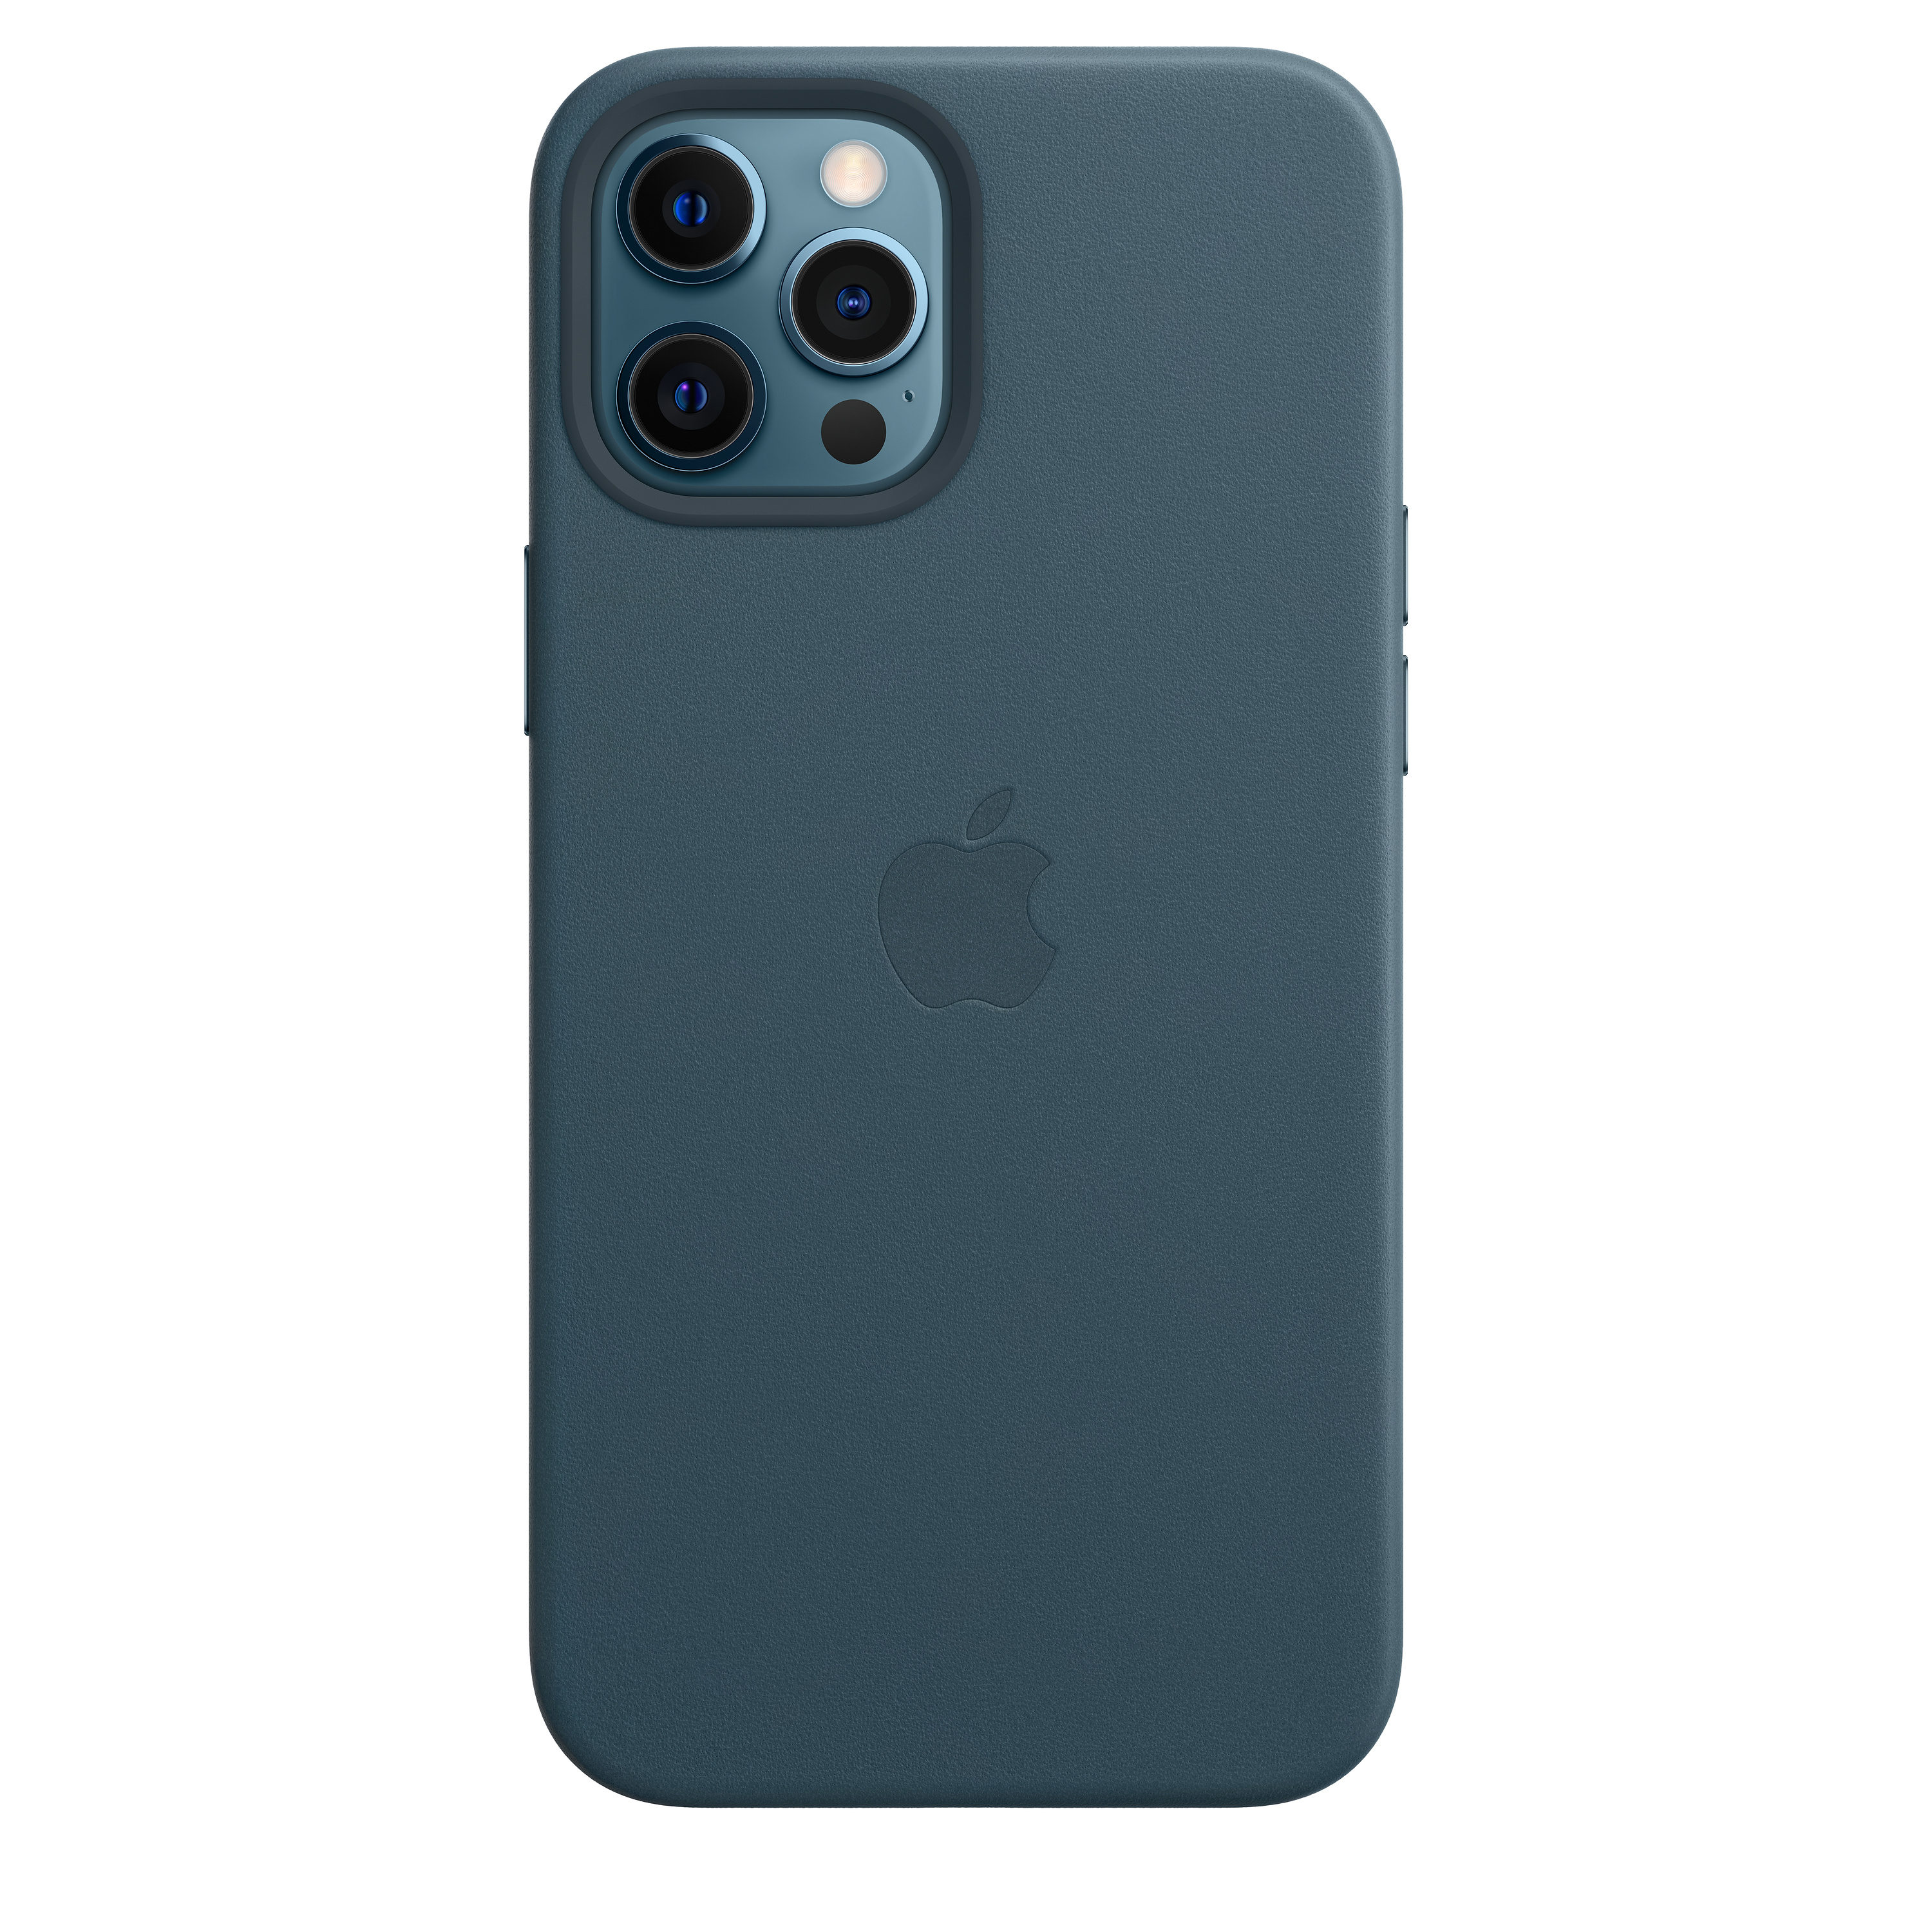 IPhone 12 PRO MAX LE Case Baltic BL MHKK3ZM/A - C2000